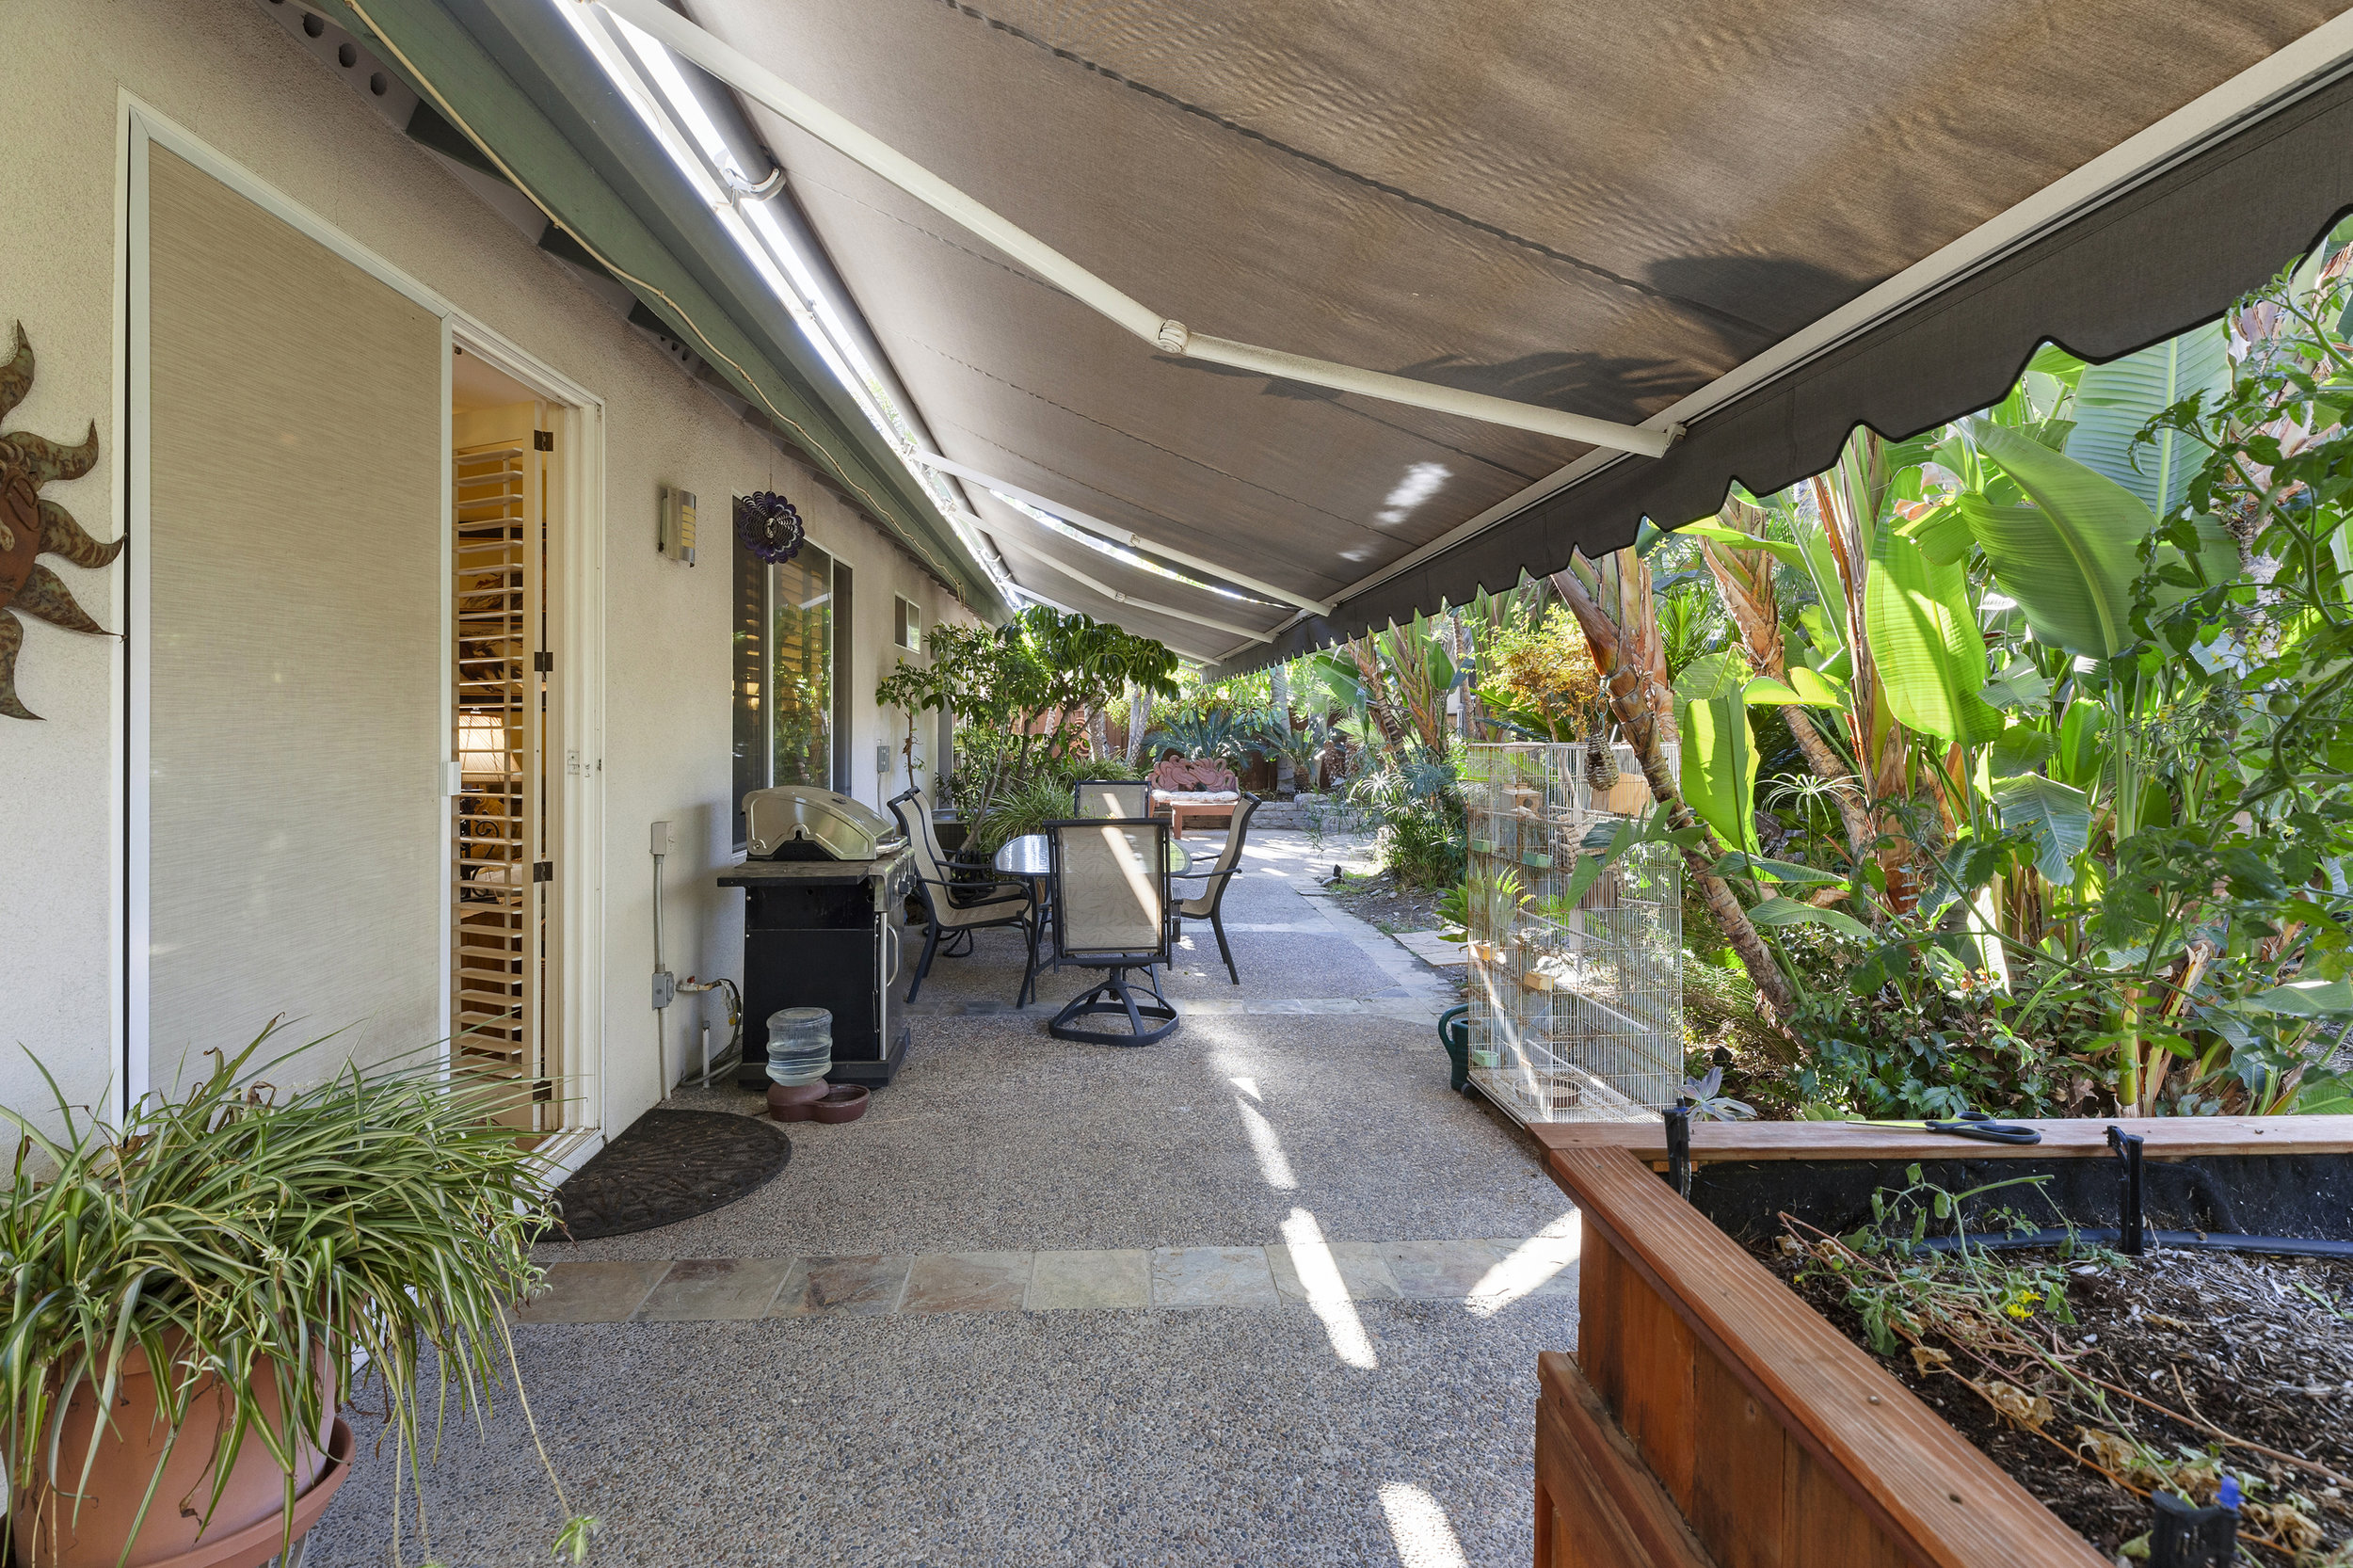 027_Patio Awning Extended.jpg